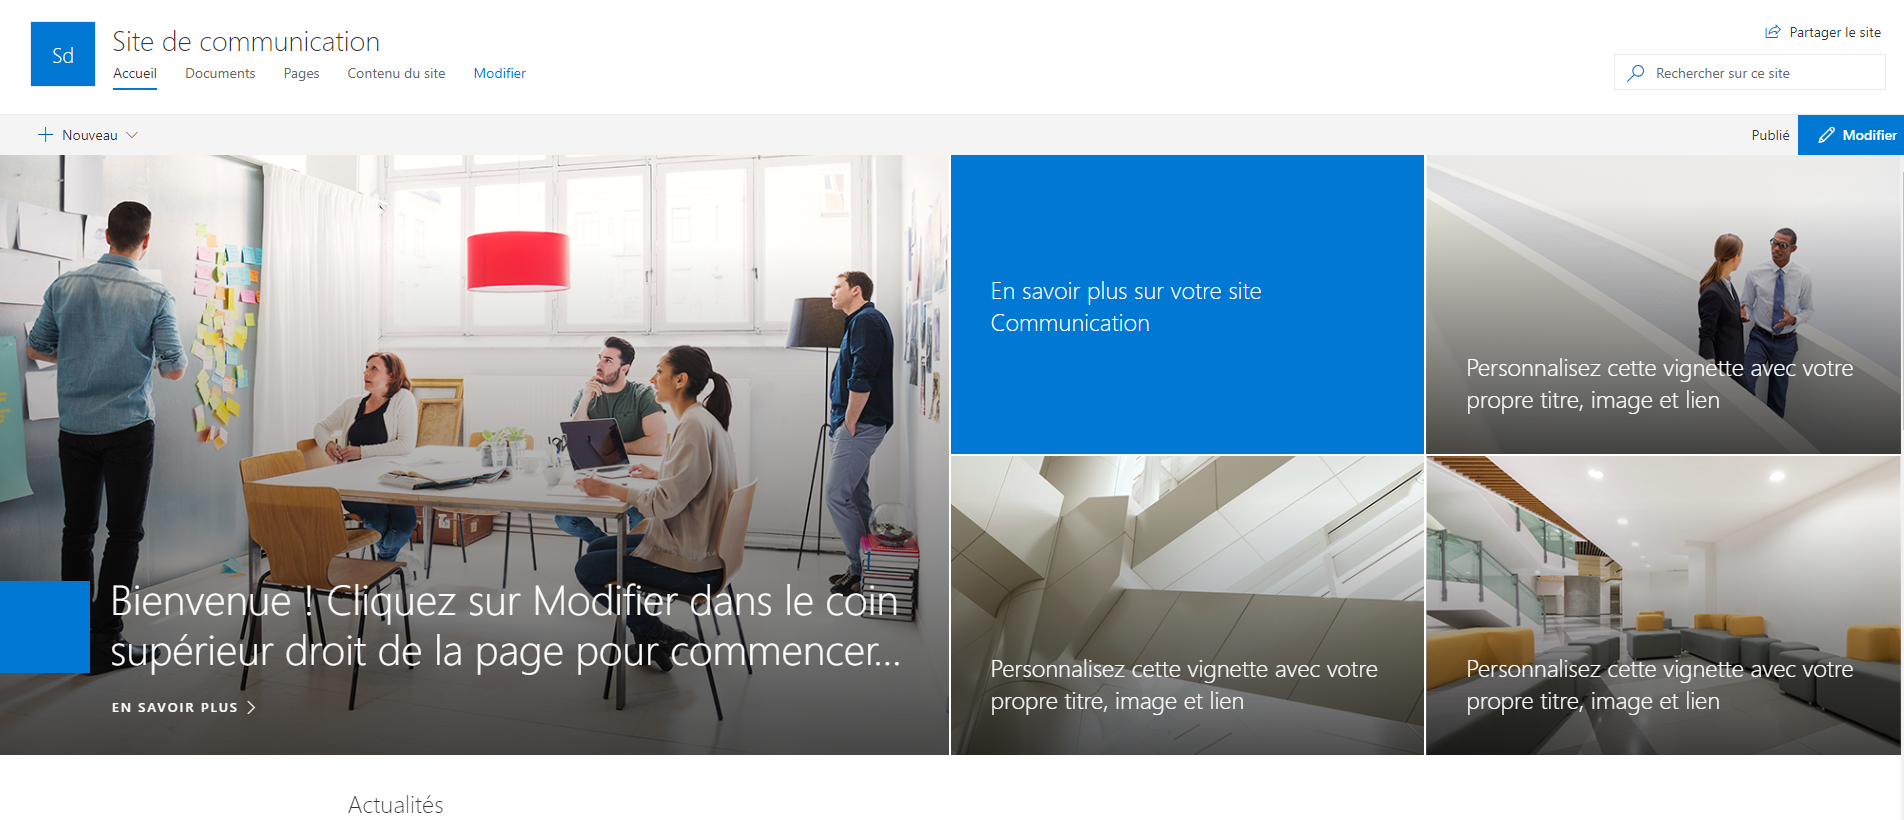 blog ai3 Capture-5 SharePoint Modern Experience : Communication Site